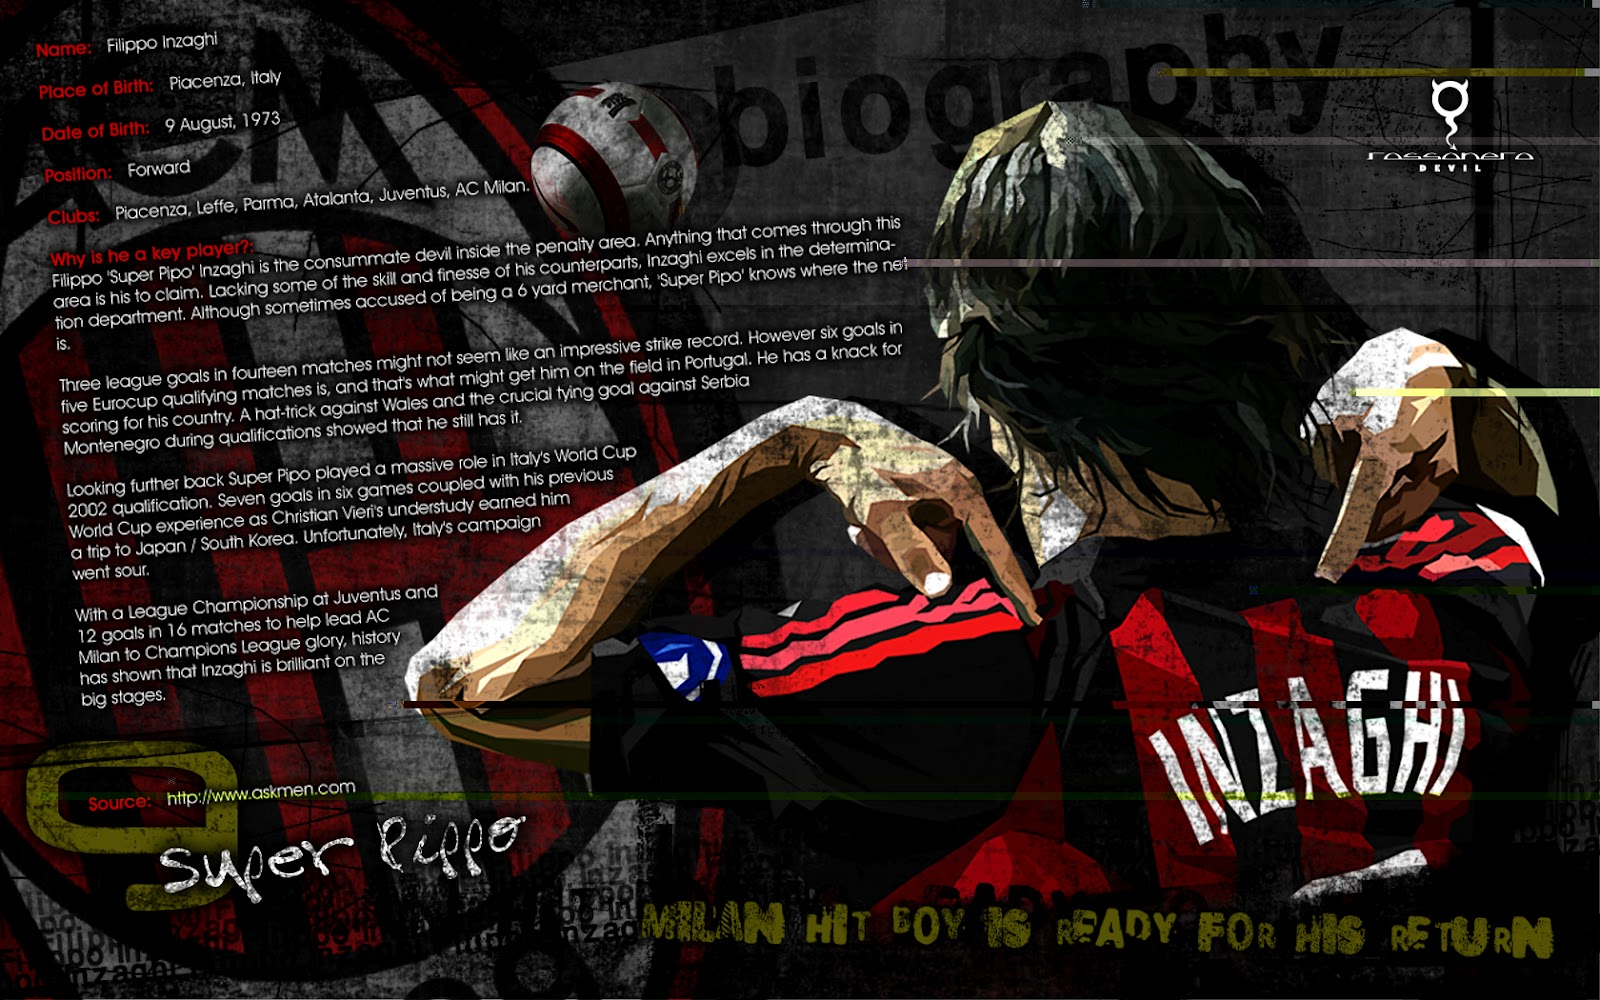 http://2.bp.blogspot.com/-hbHrghWqSGY/T8L1a1rAywI/AAAAAAAACxI/O6LsZrov6gk/s1600/Superpippo_by_RossoneroDevil.jpg